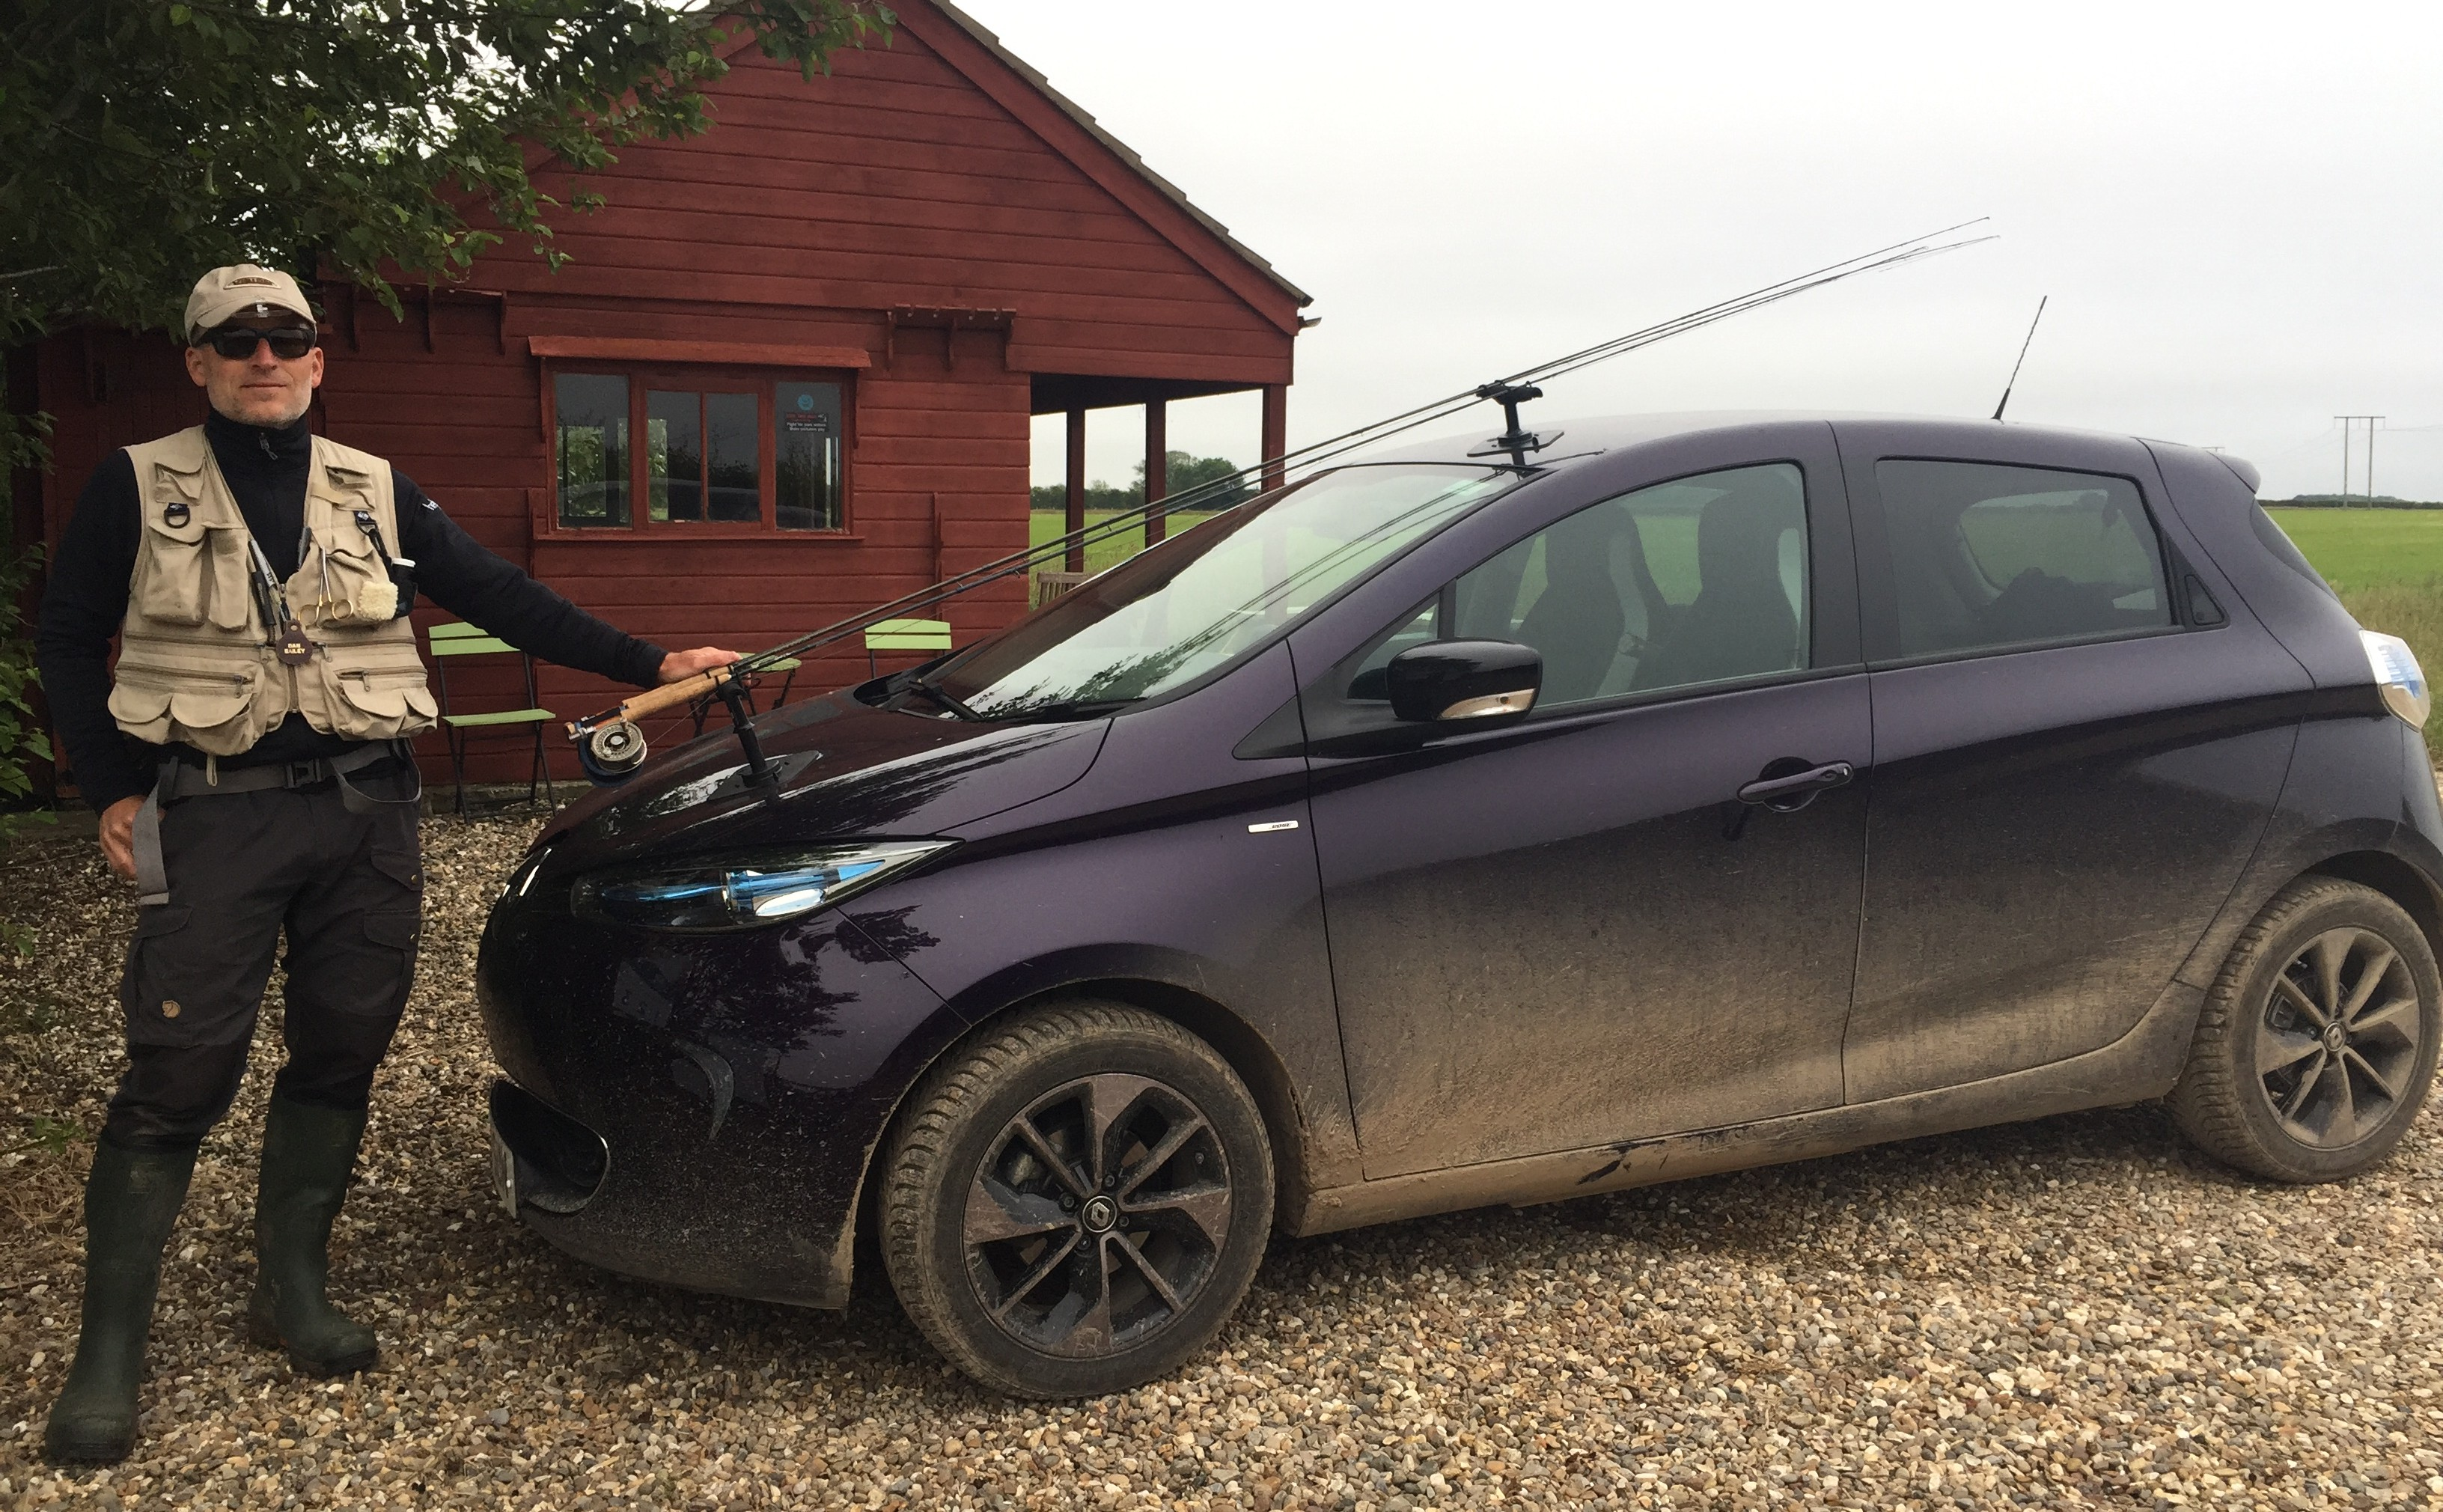 living with an EV - Lars standing next to his EV in fishing gear with a fishing rod attached to the car